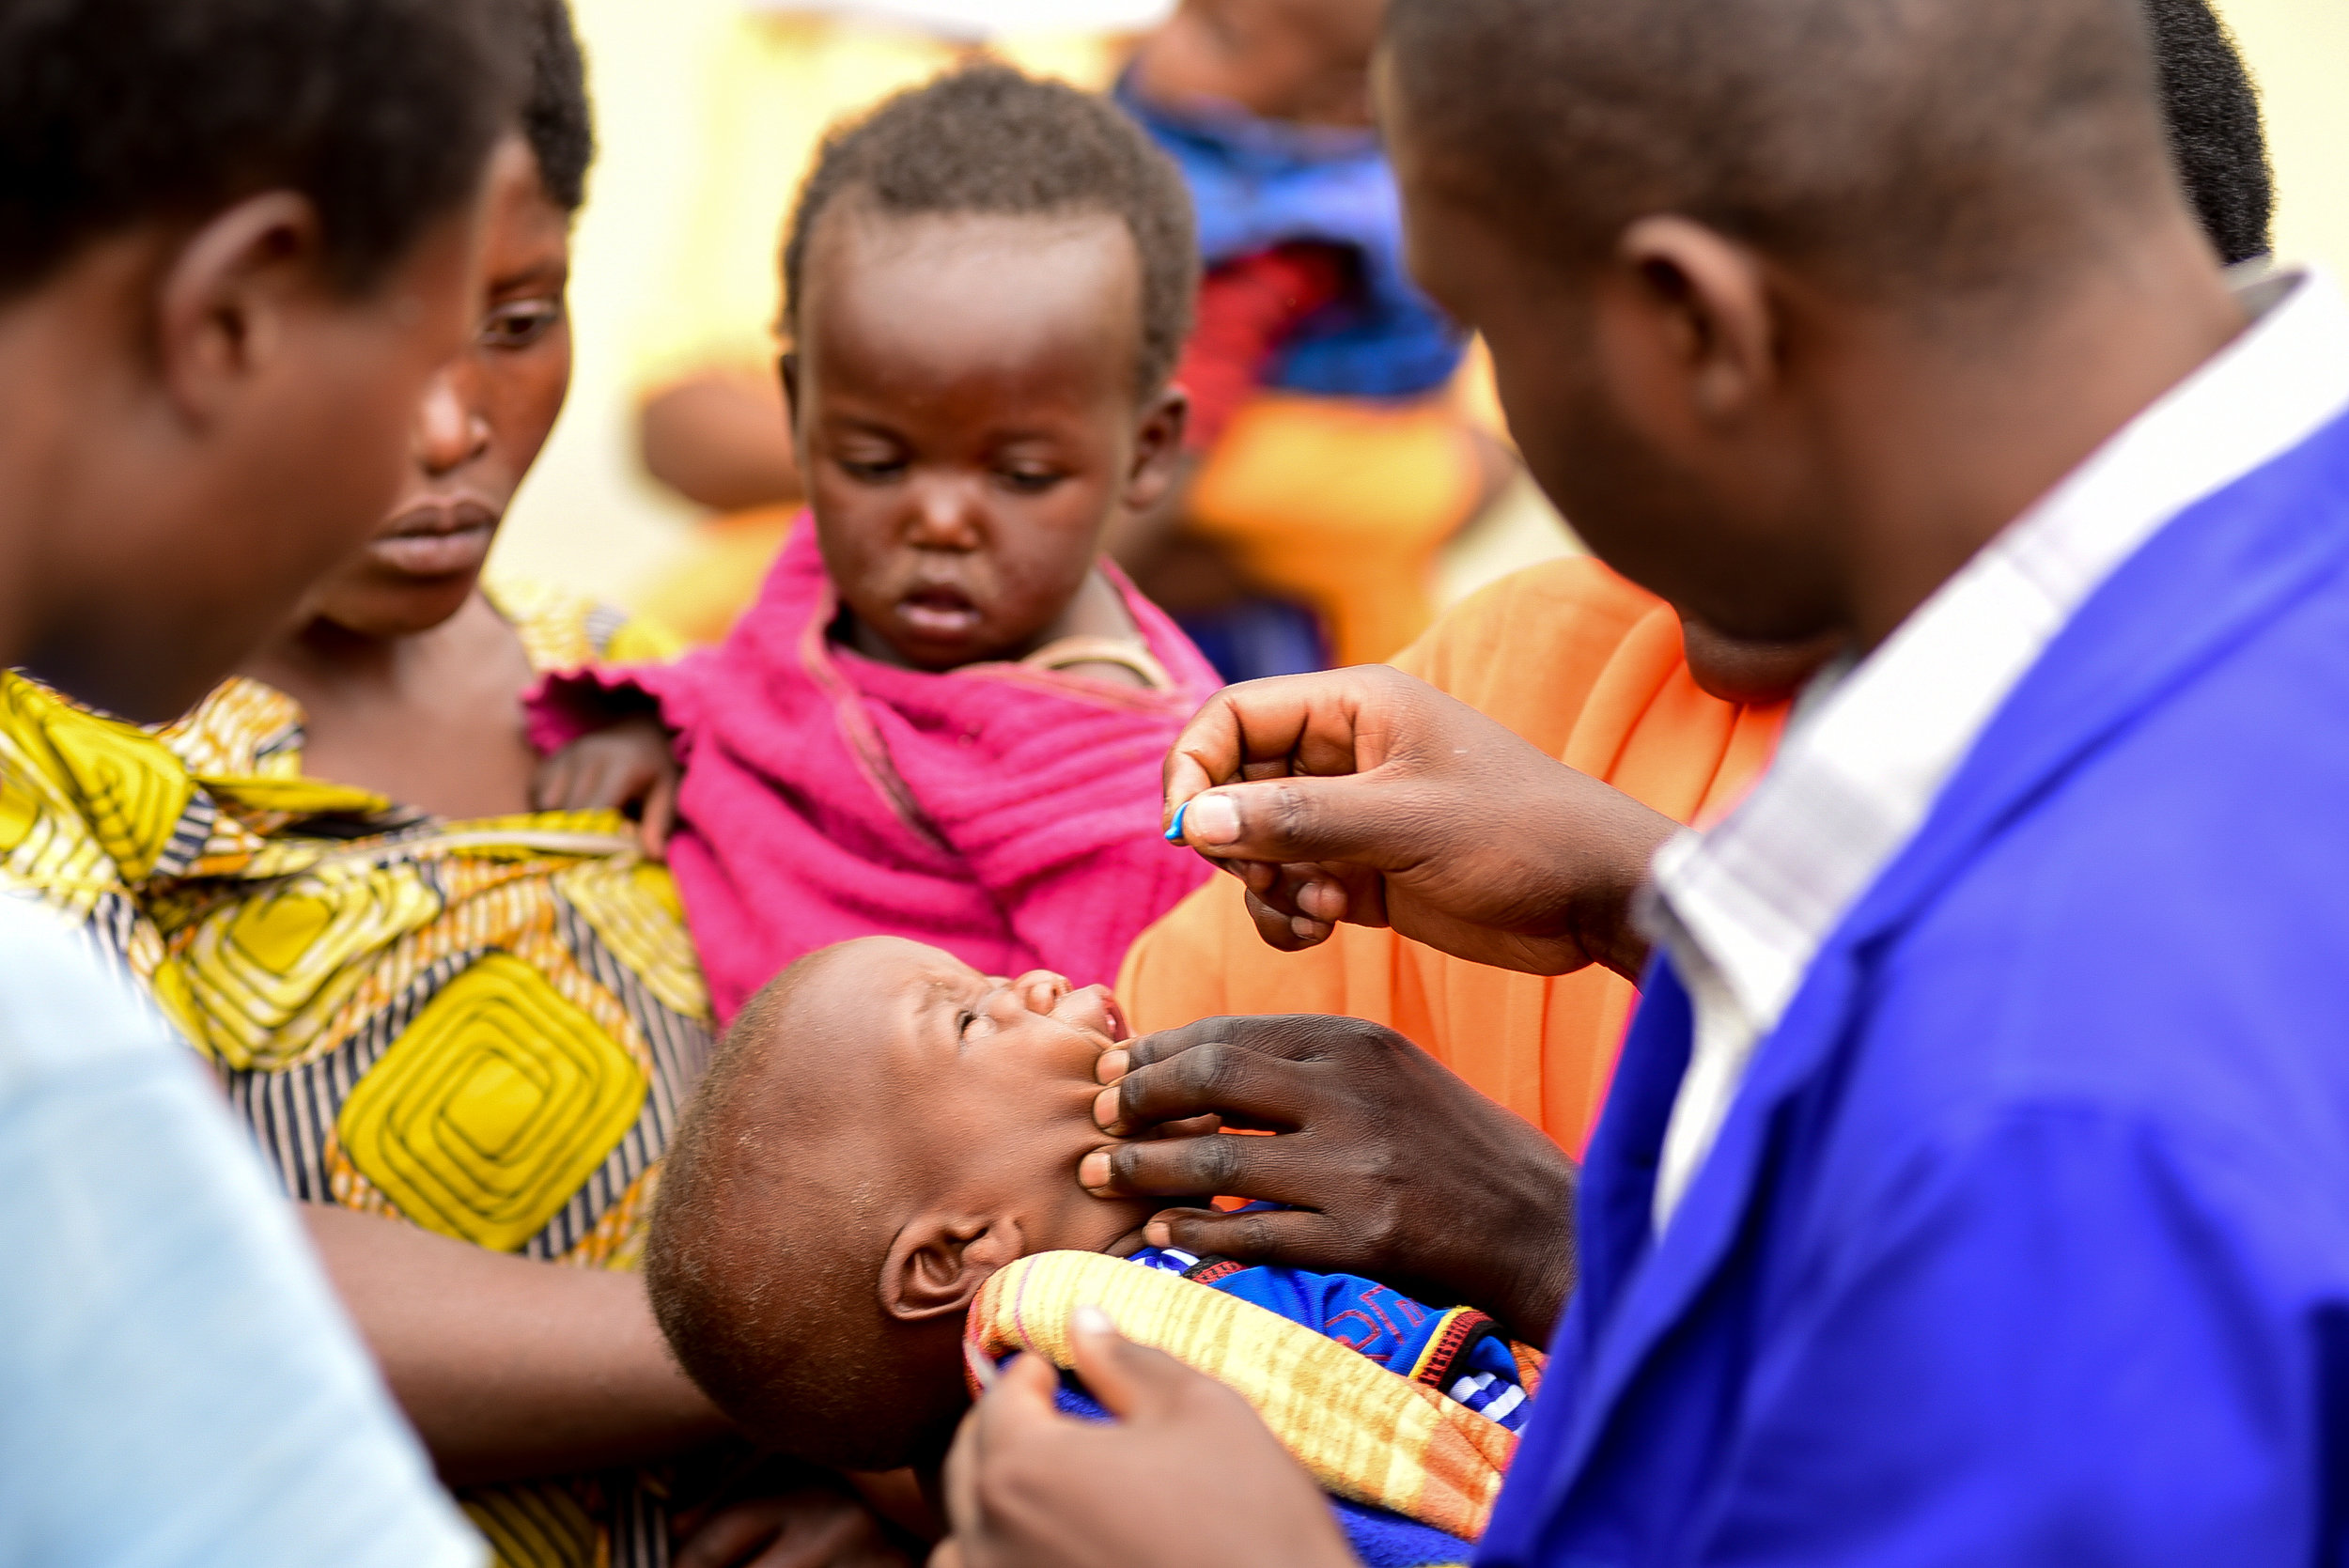 Muhawenimana Kevine is dewormed at her local health center. Malnourished children are at higher risks for certain diseases and parasites, including common intestinal worms found in rural Rwanda.